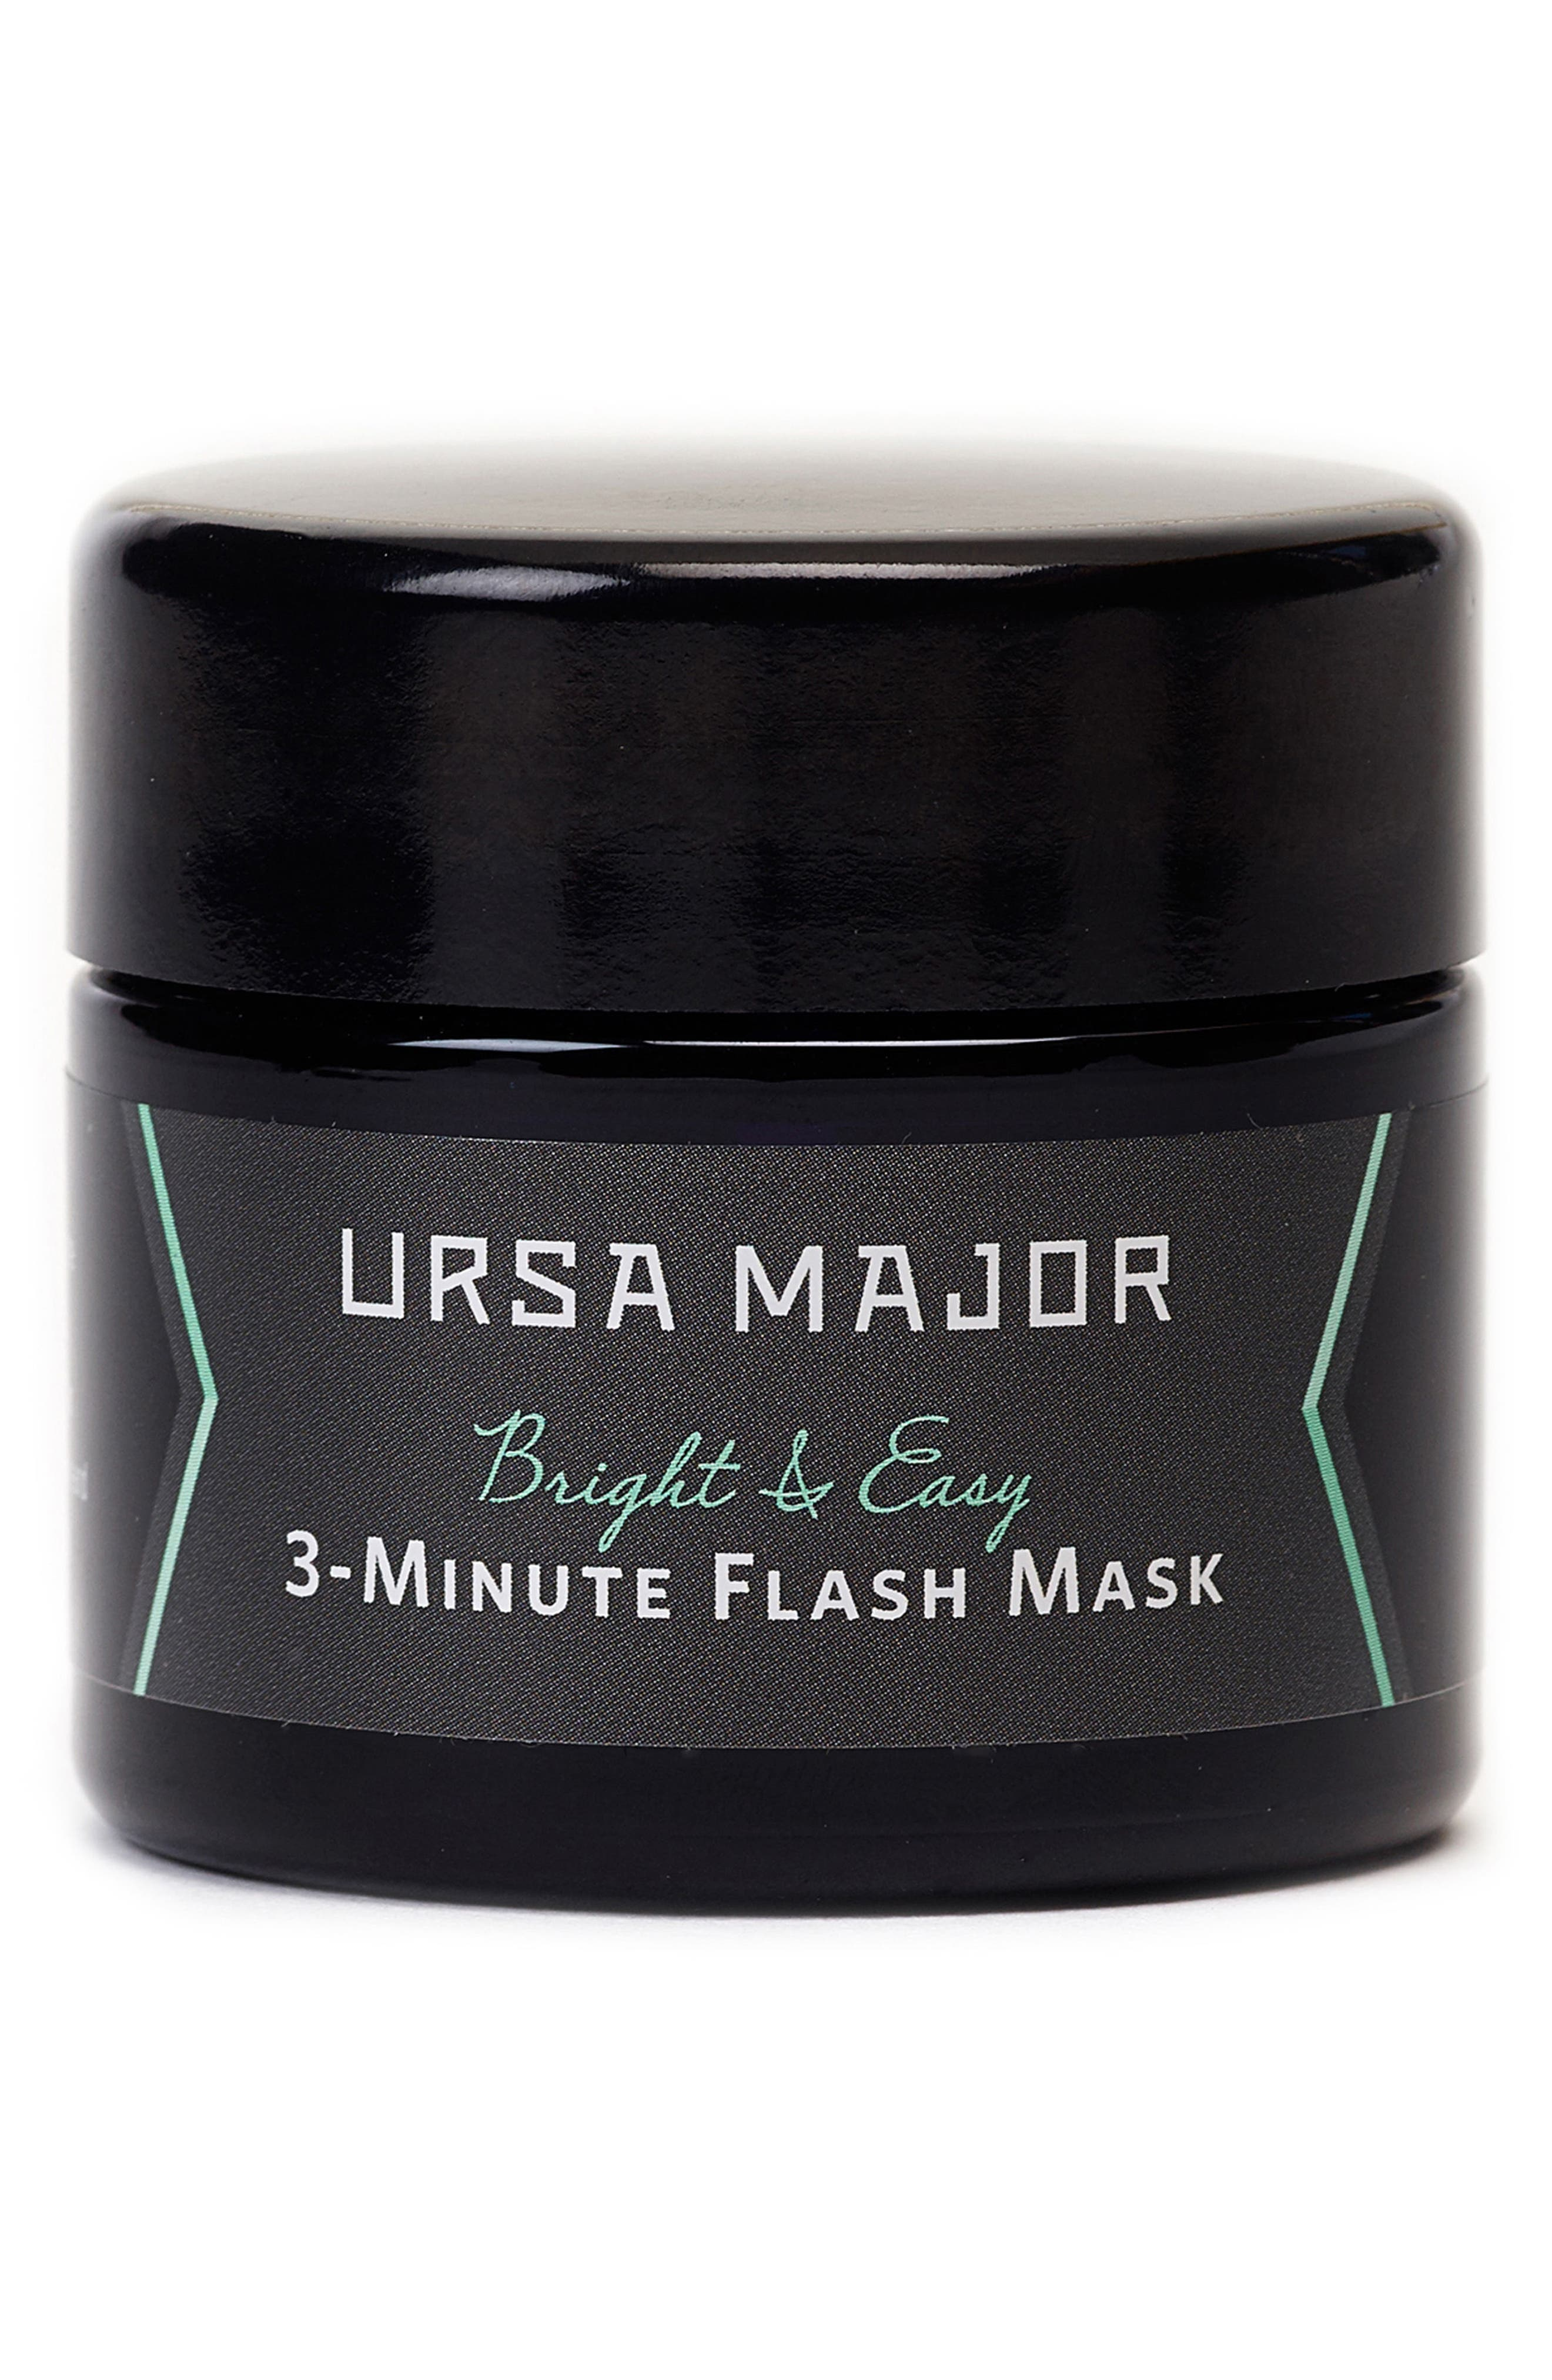 Bright & Easy 3-Minute Flash Mask,                         Main,                         color, 000